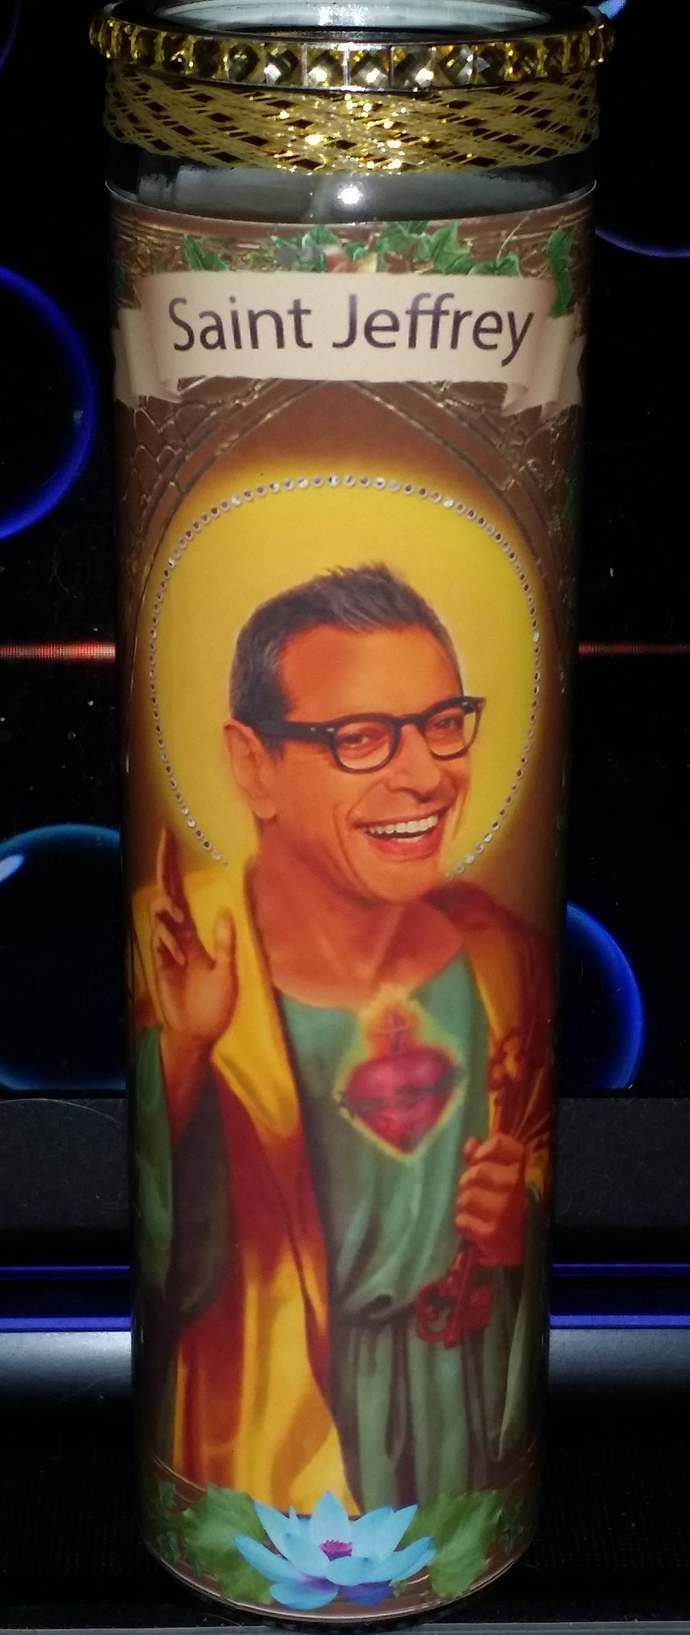 Jeff Goldblum Celebrity Prayer Saint Candle - Church  styled